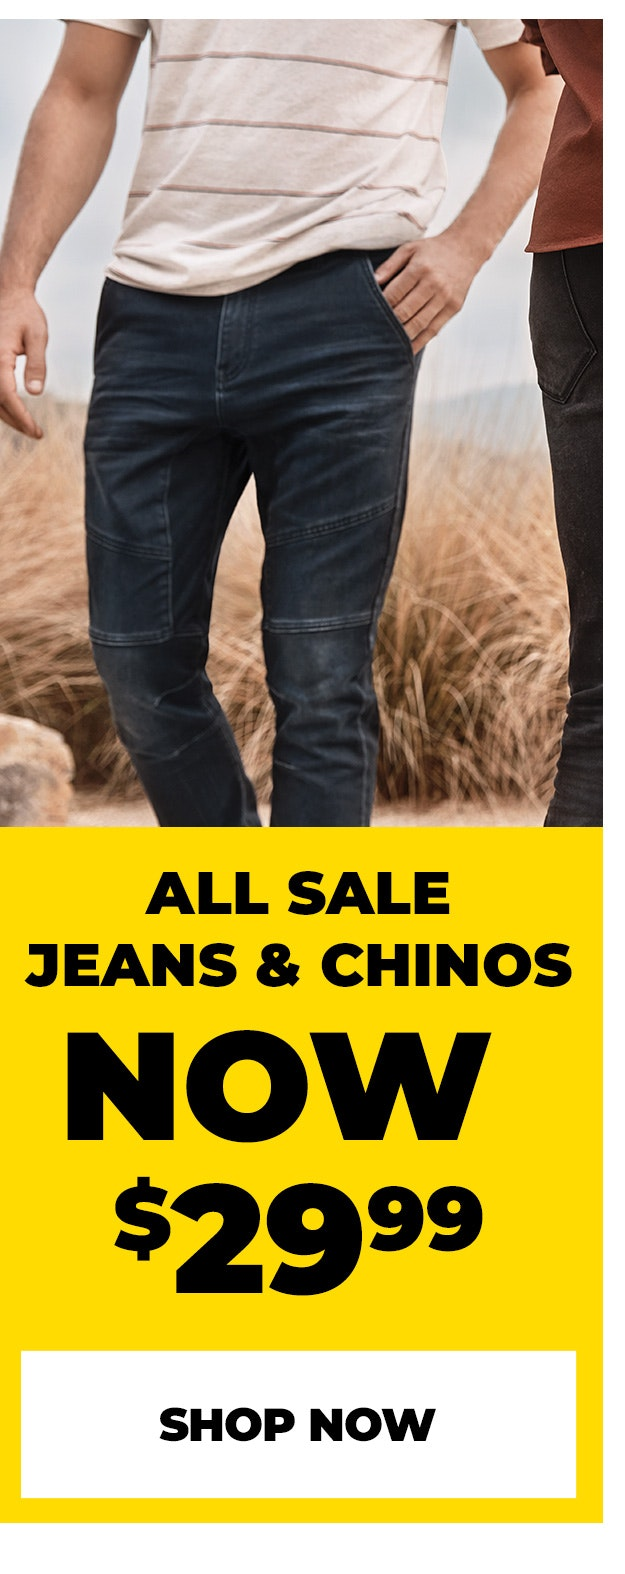 sale jeans & chinos